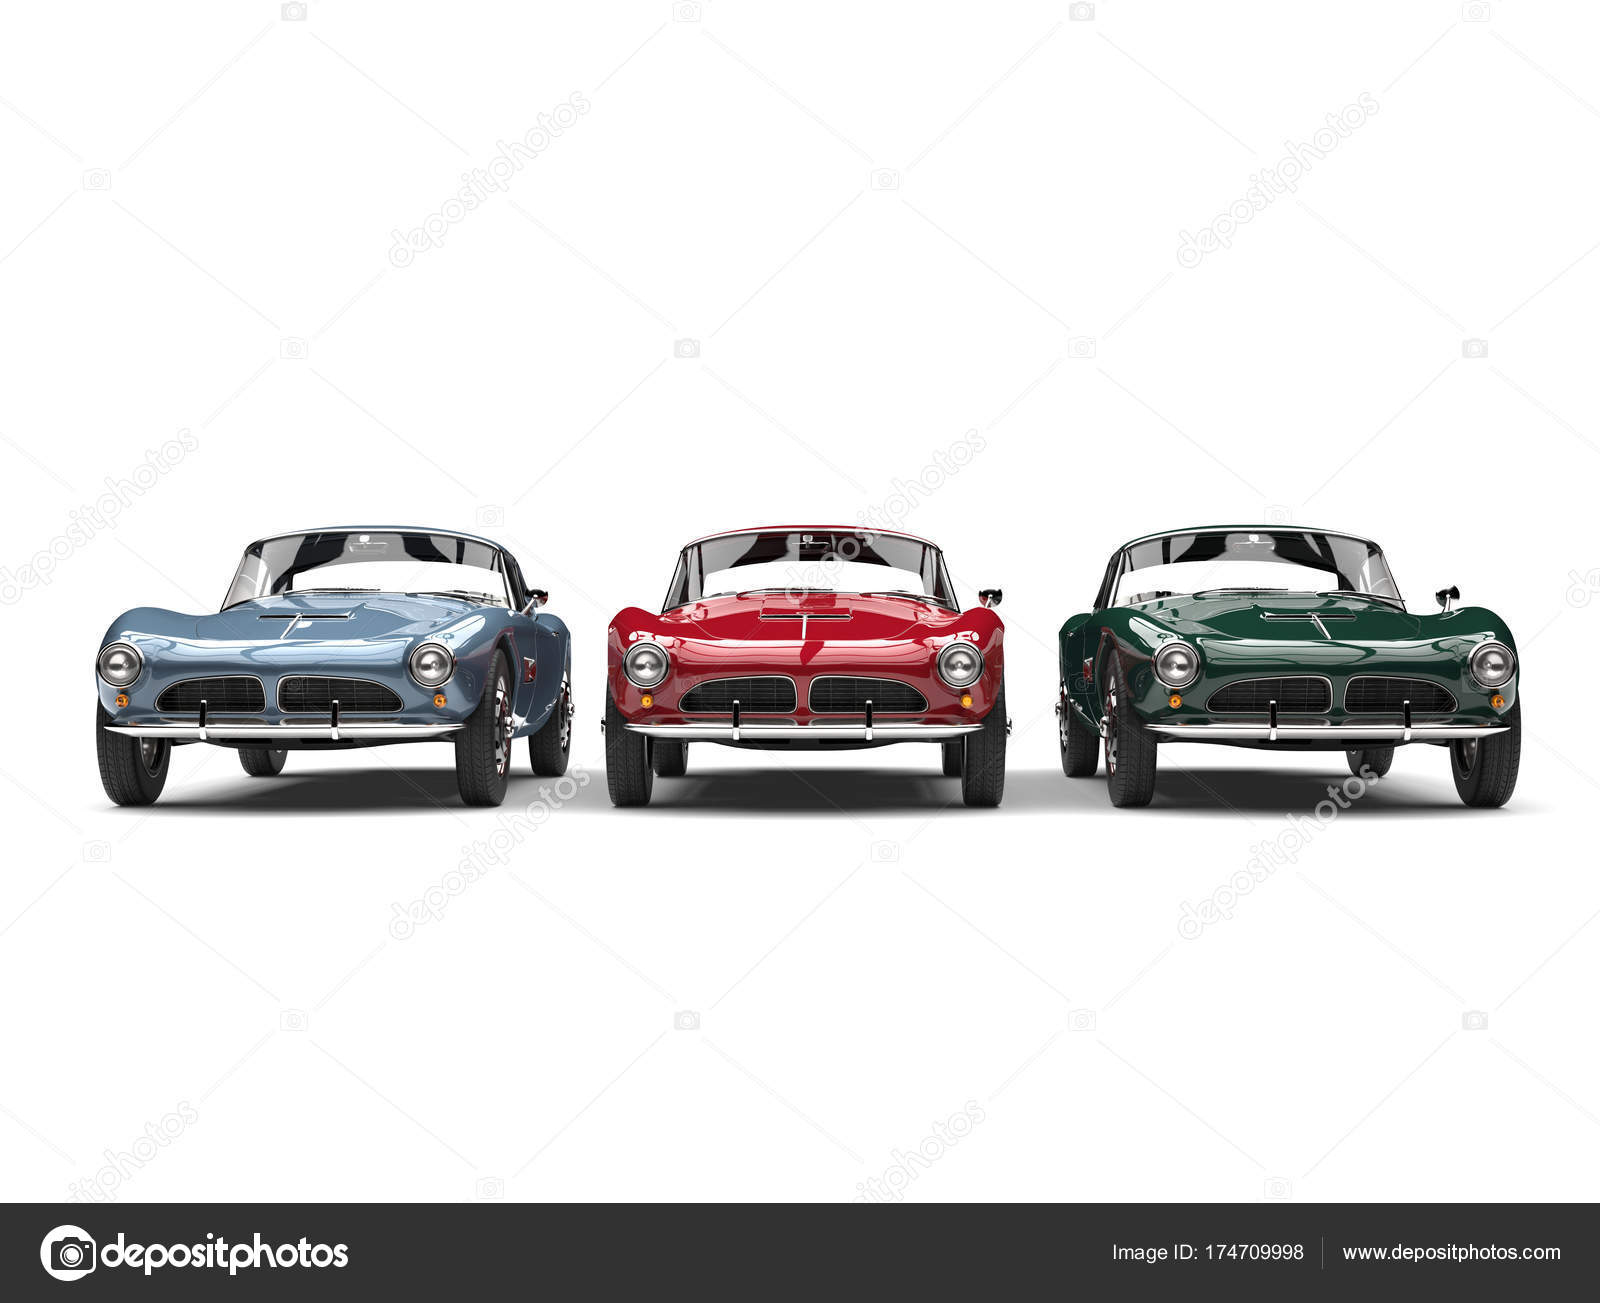 Awesome vintage sports cars in old school red, green and blue ...